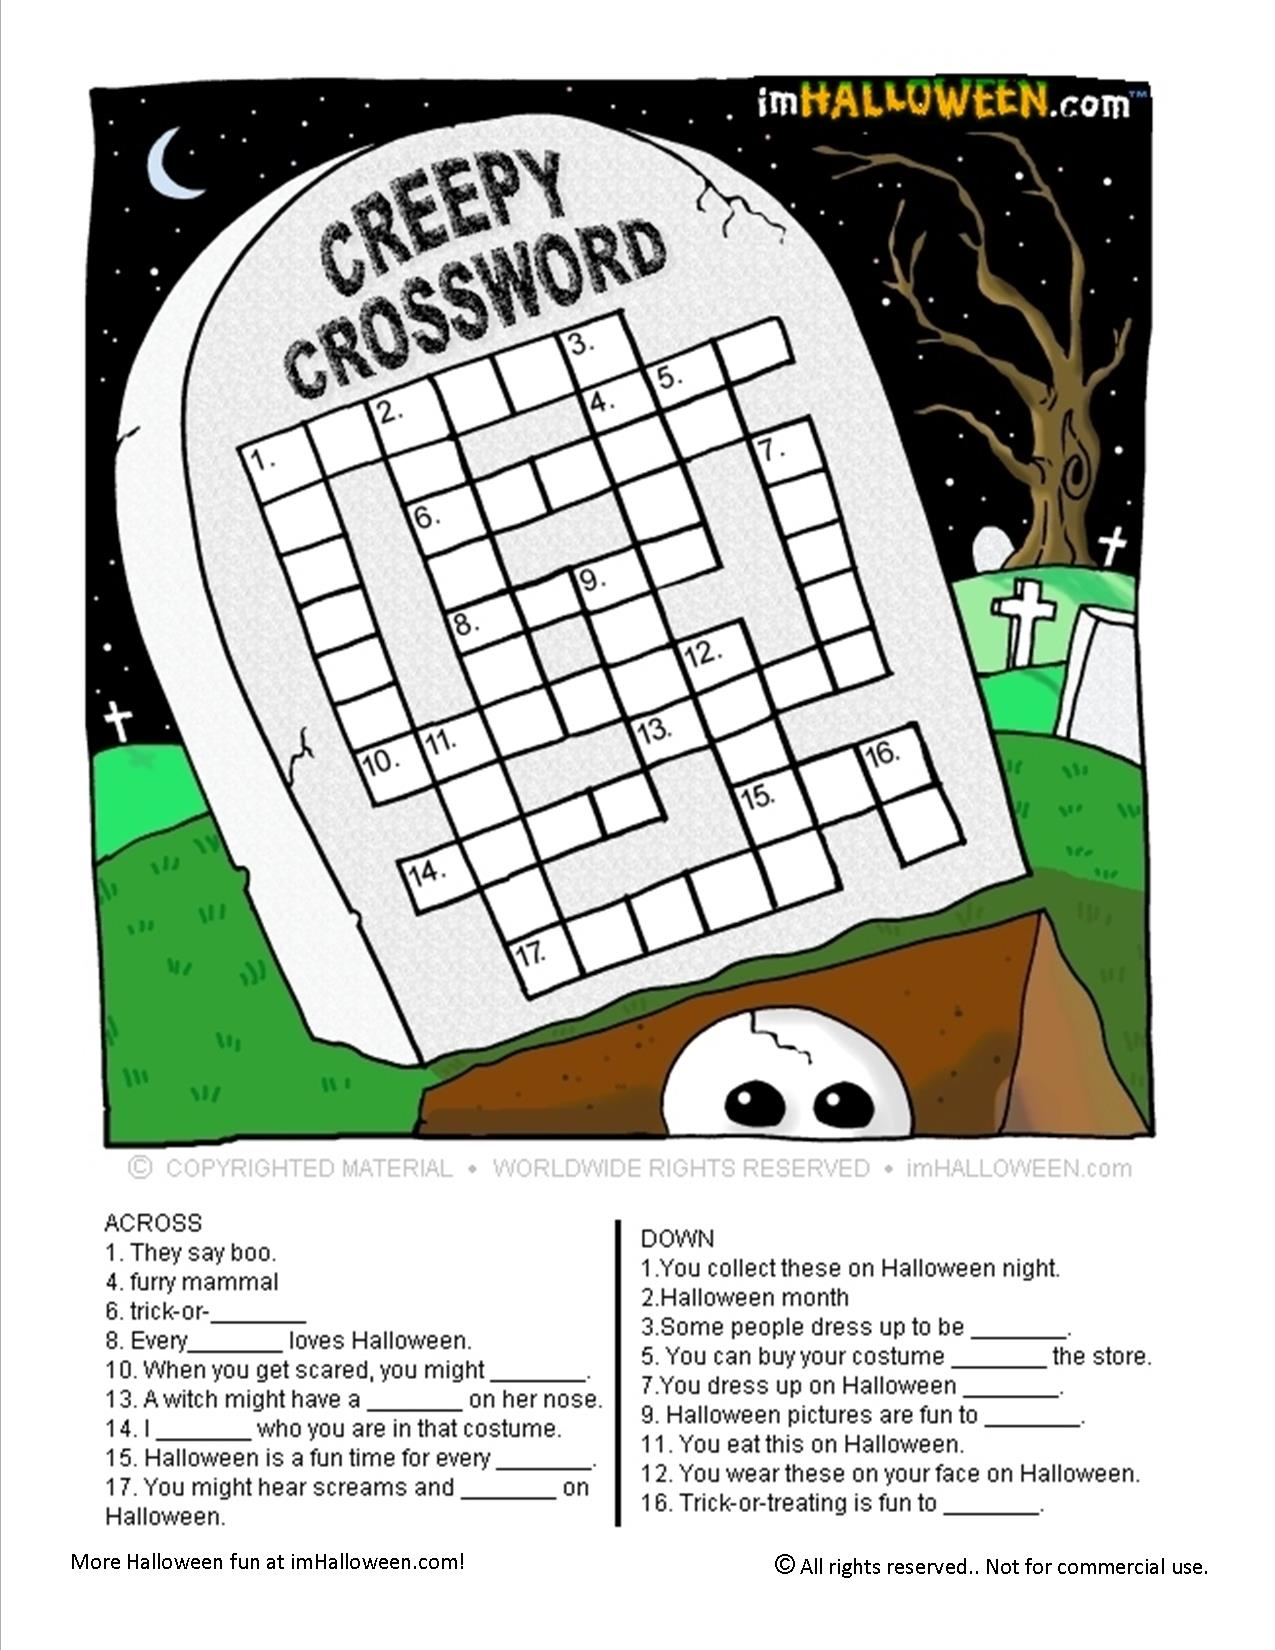 creepy crossword puzzle